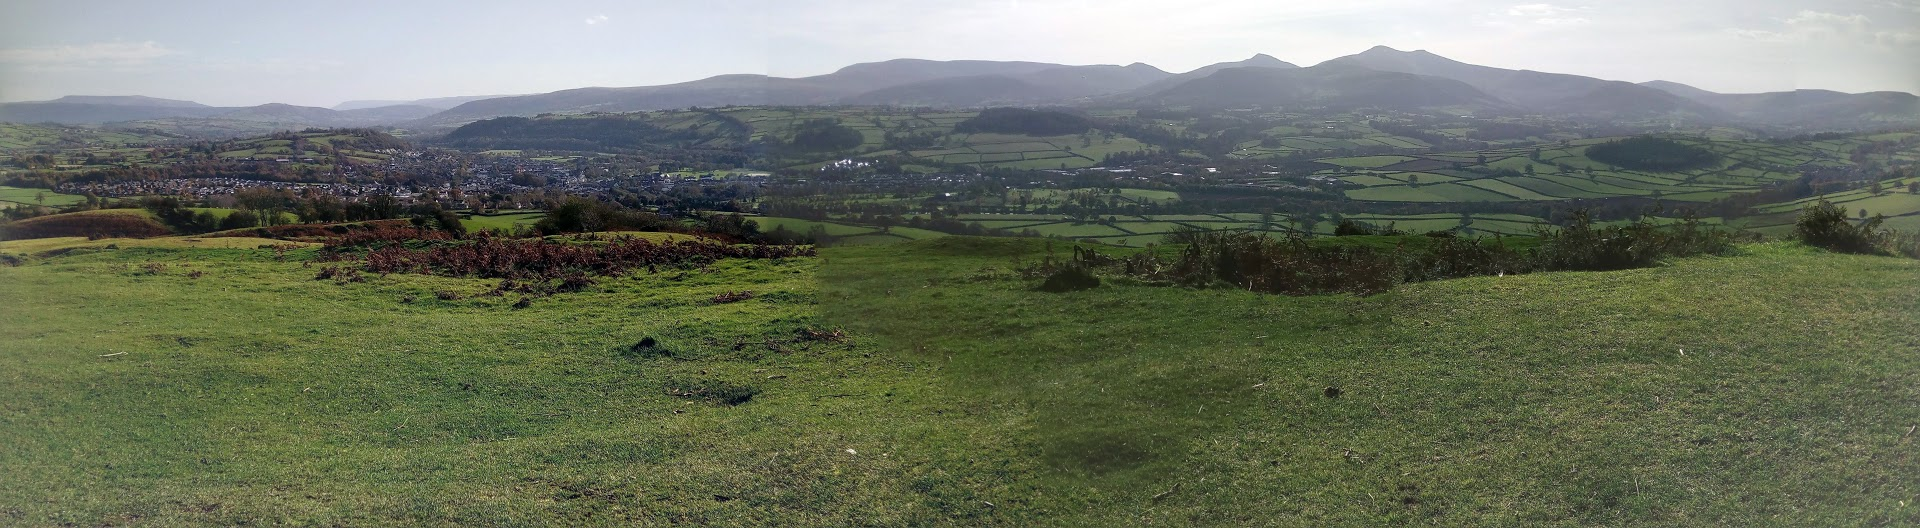 View of the Brecon Beacons from Pen y Crug